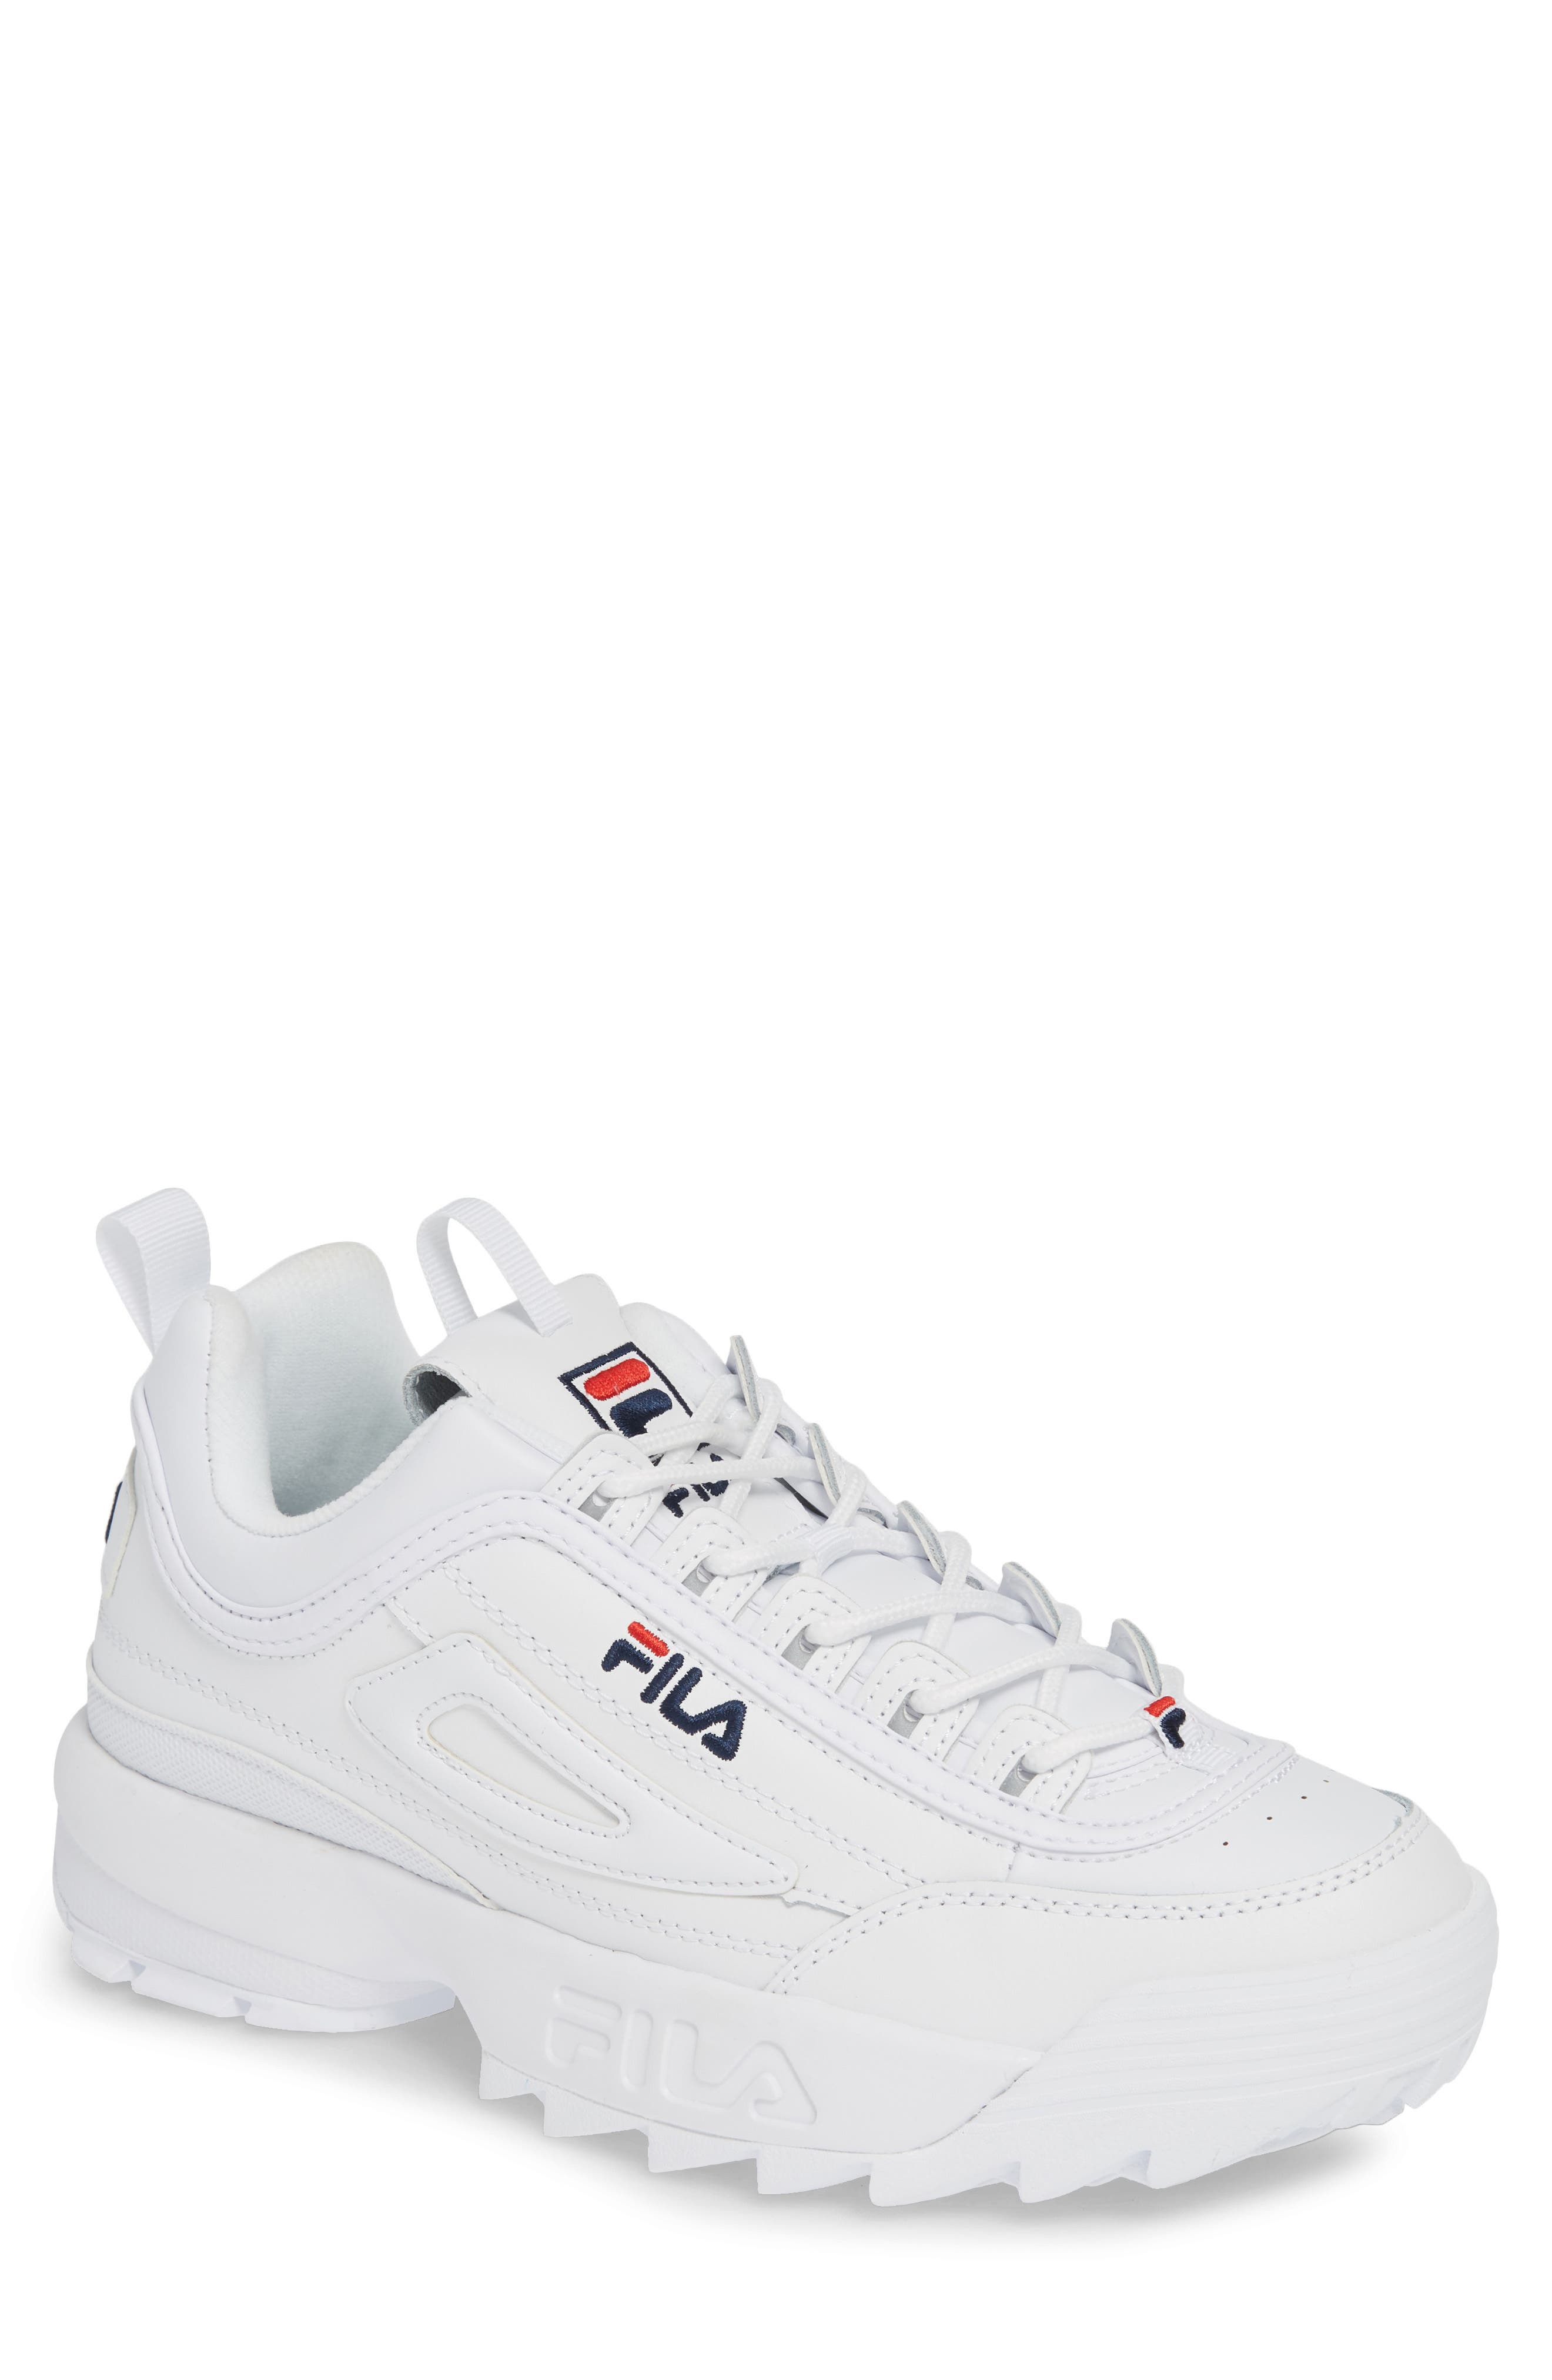 70a6de35575f6 Men s FILA View All  Clothing